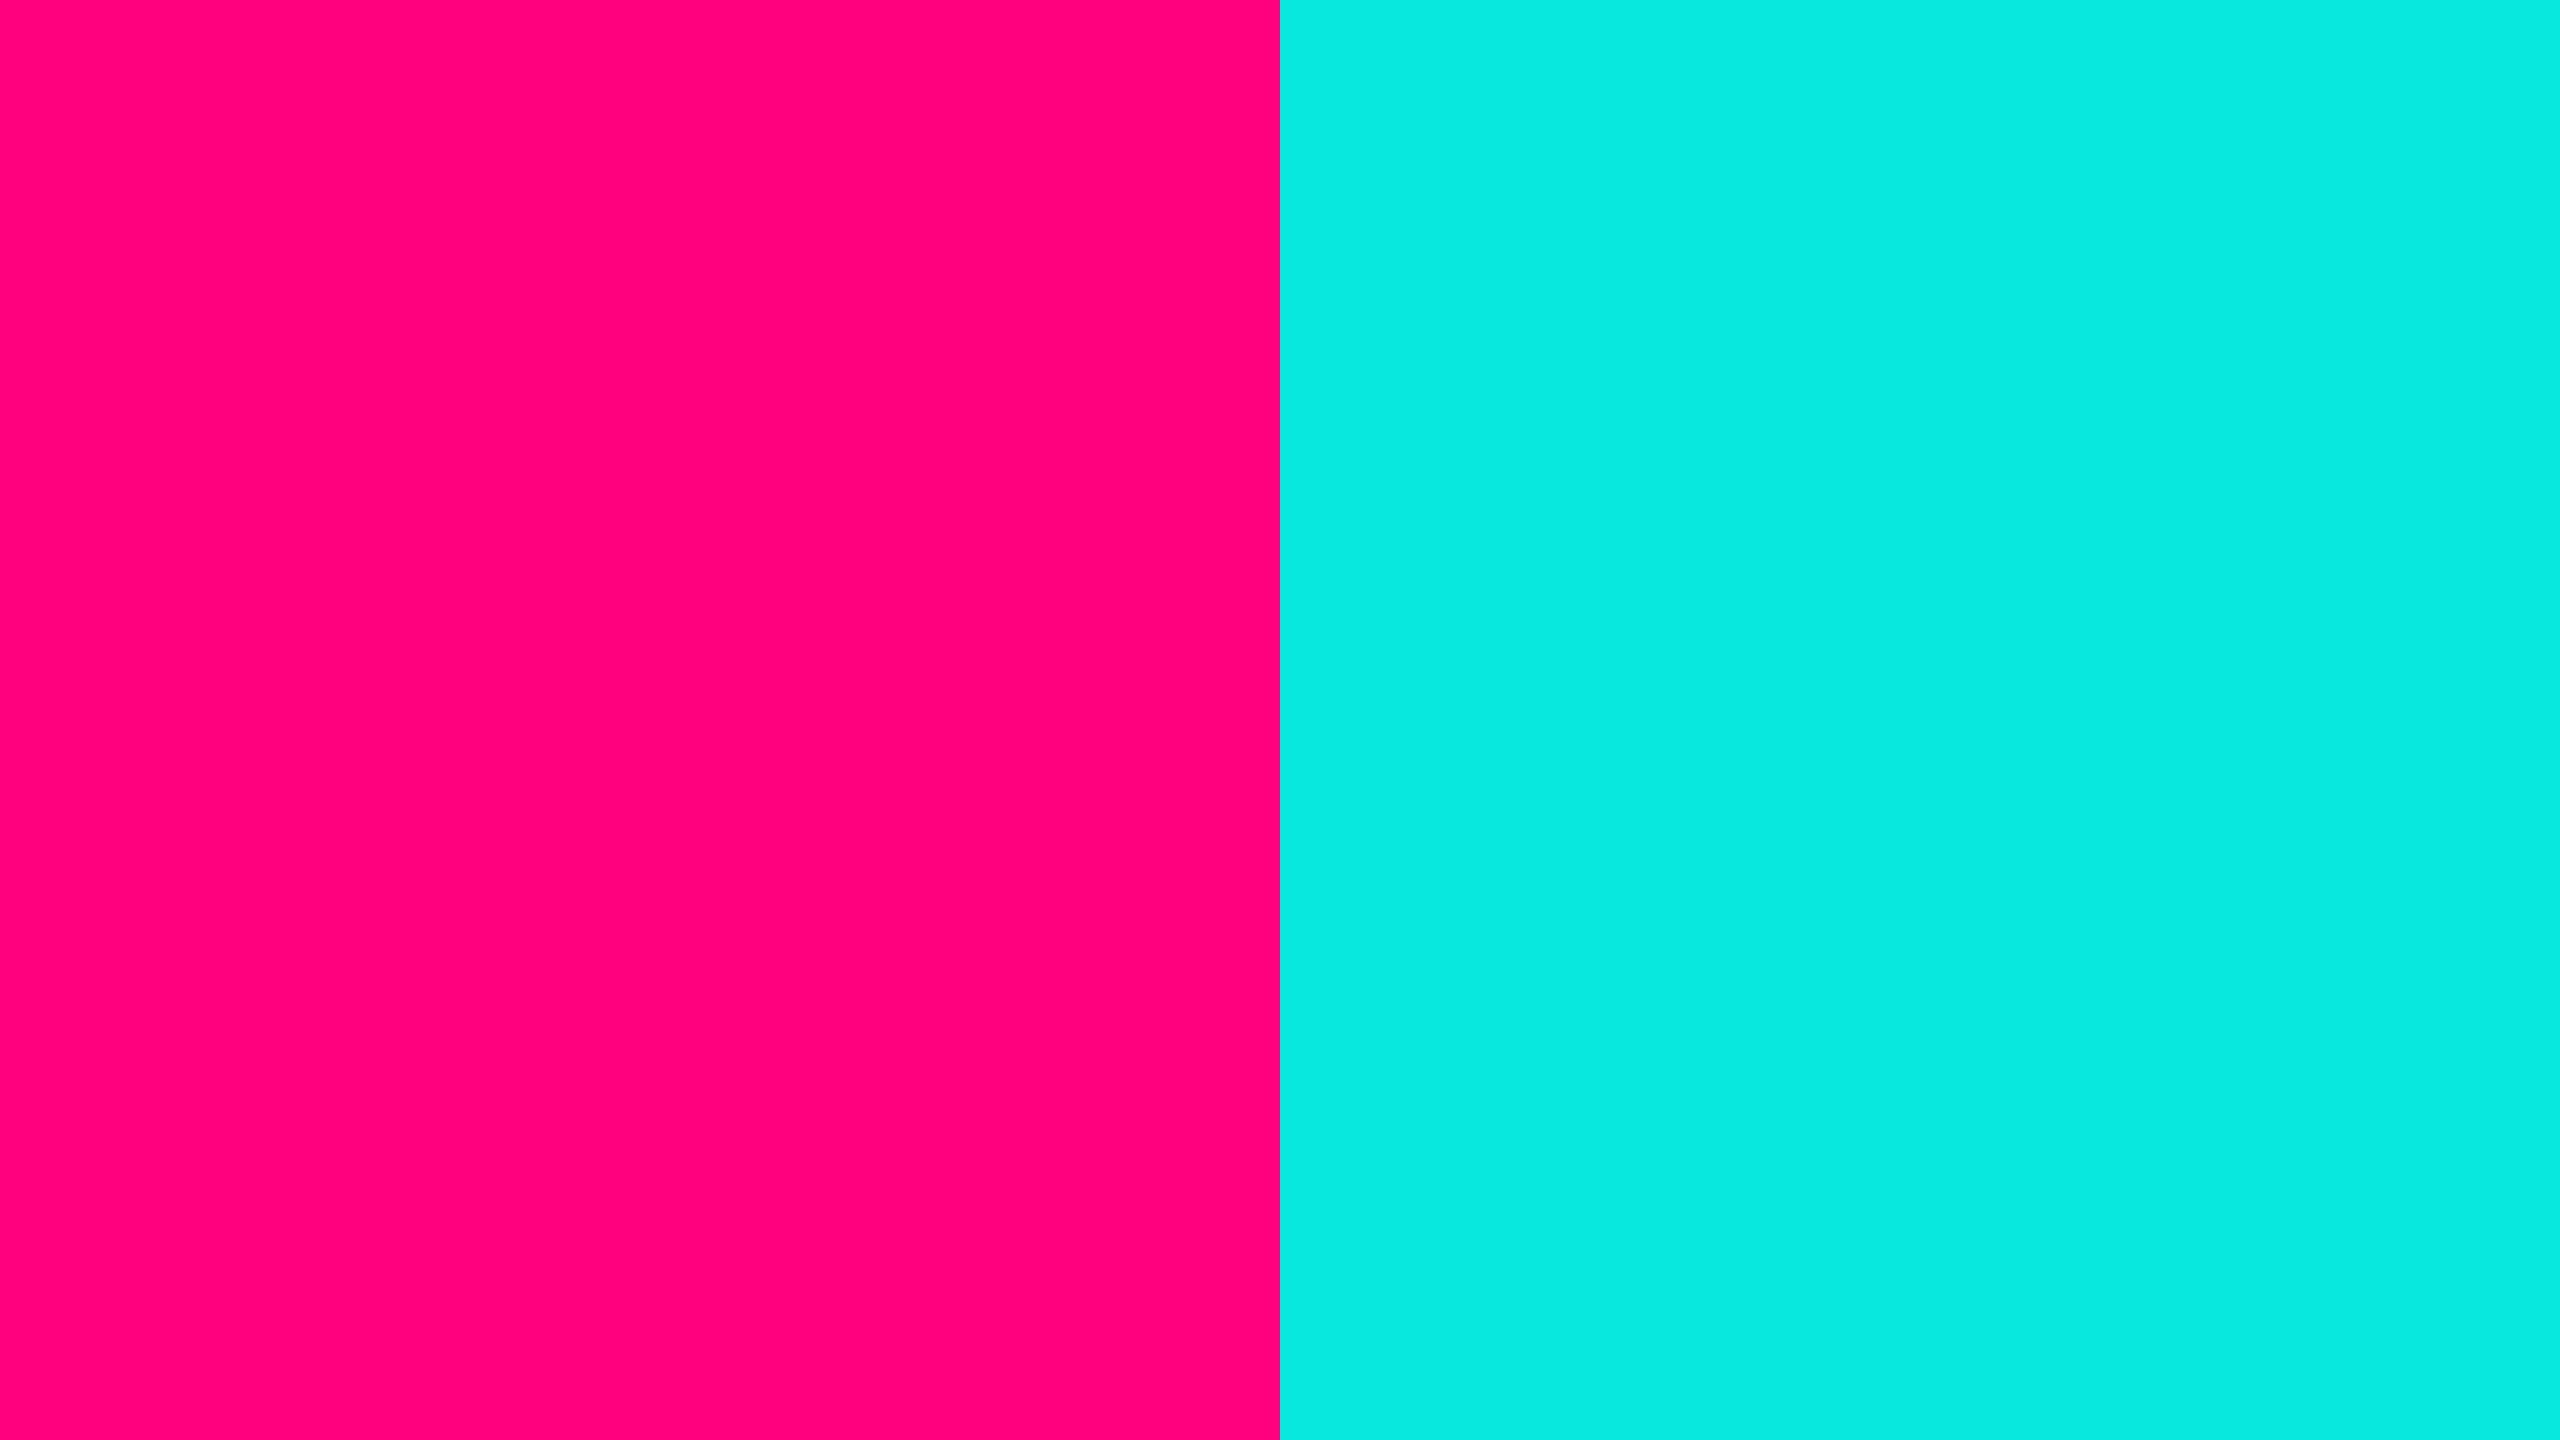 Bright Colored Backgrounds 66 Images